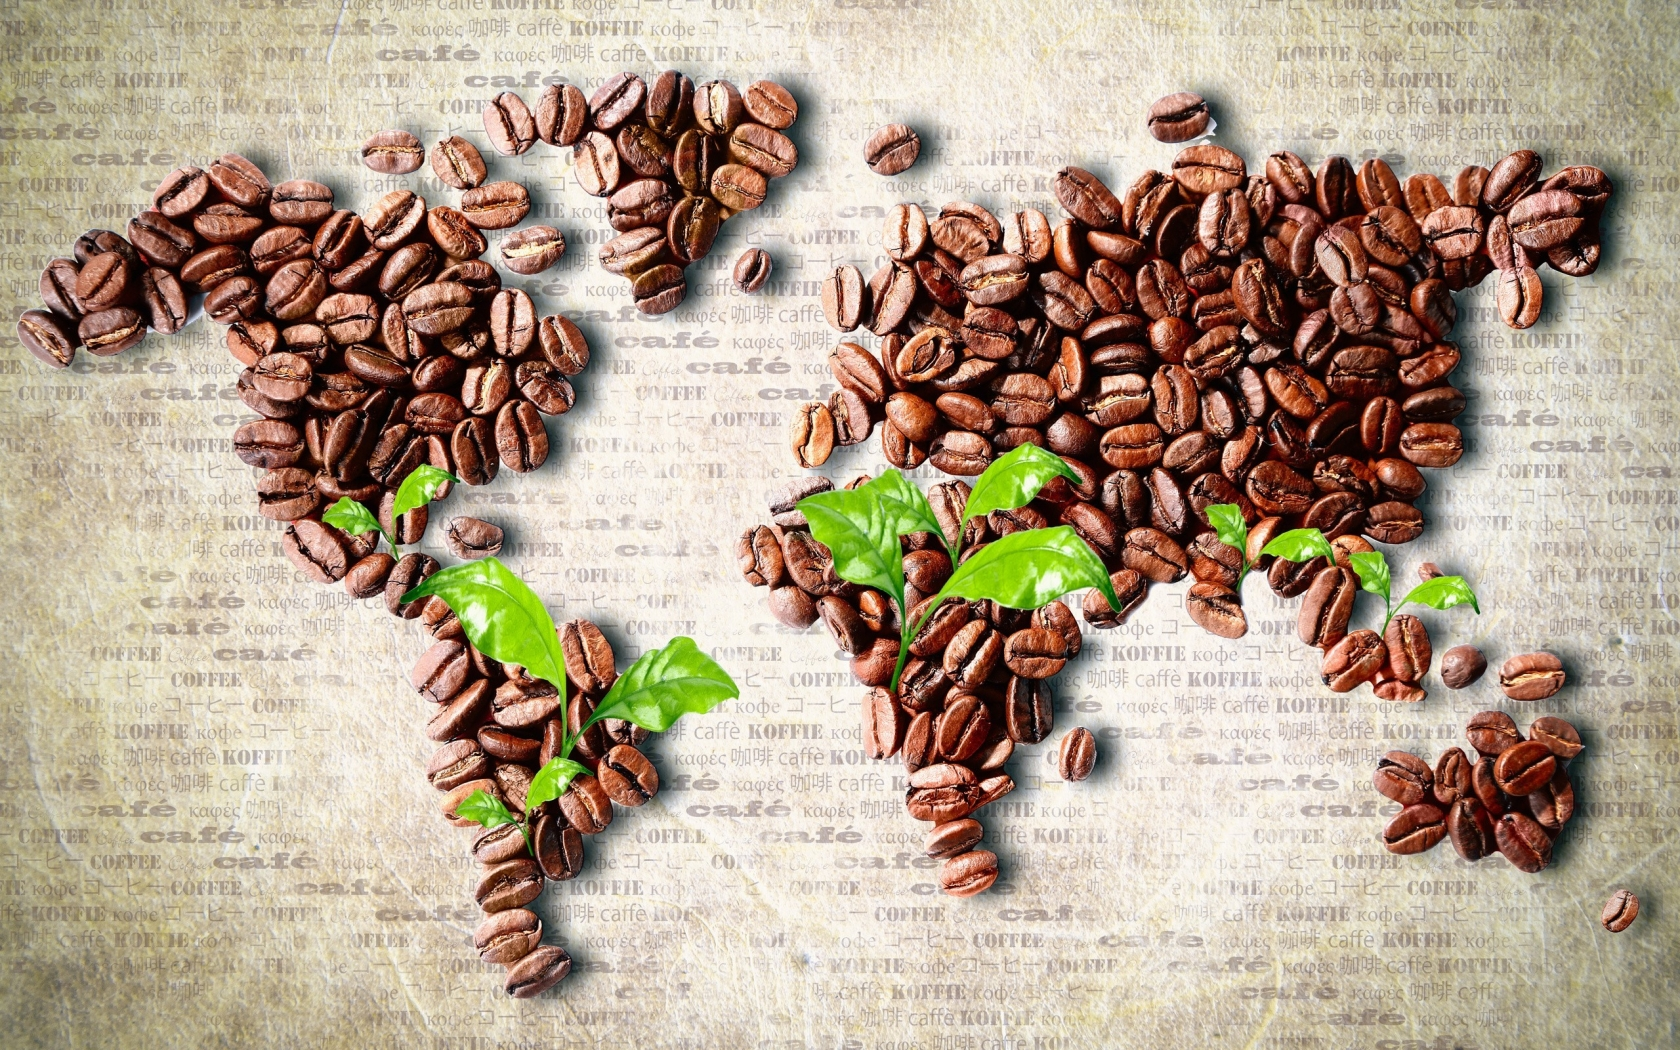 Coffee Beans World Map for 1680 x 1050 widescreen resolution